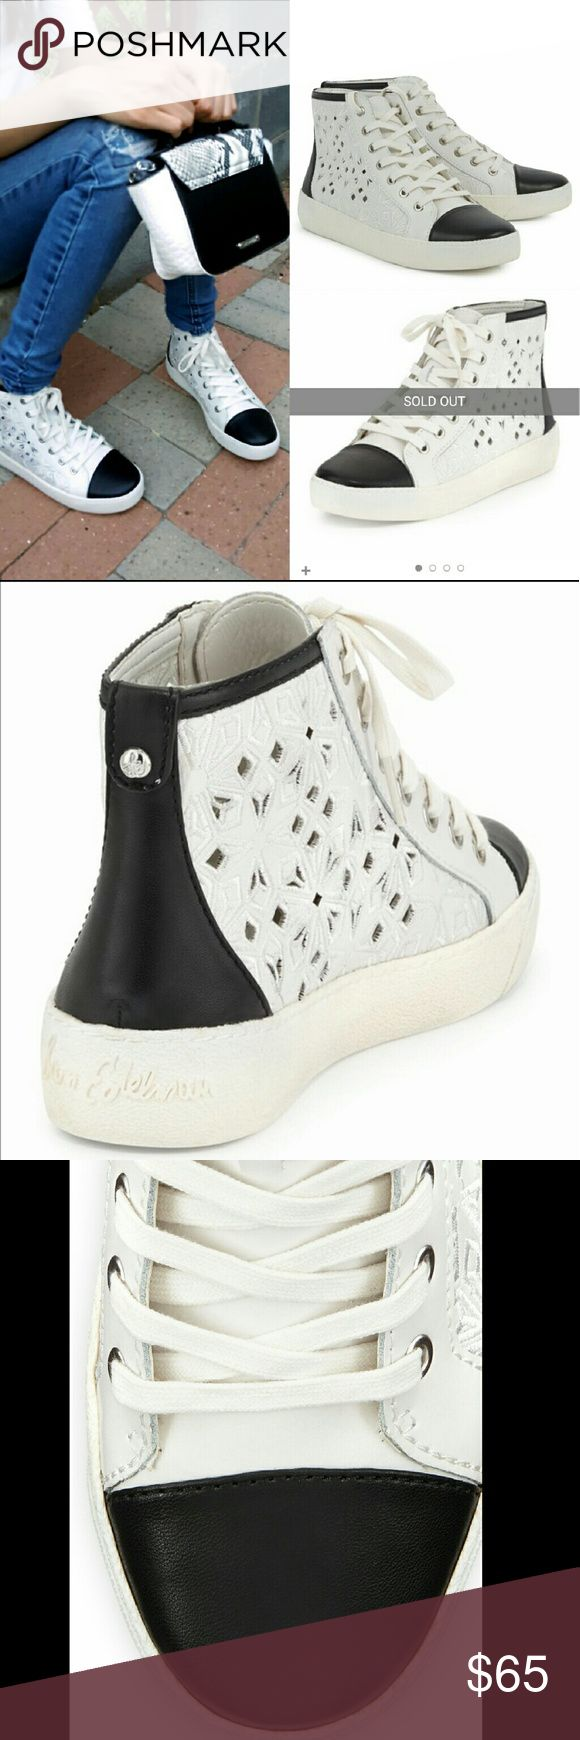 "NIB Sam Edelman Branson Embroidered-Cutout Sneaker Check it out on HSN. Street-smart style: Snowflake perforations lend delicate geometric edge to an urban sneaker. A platform lends comfortable lift to the sporty silhouette. Lace-up closure. Rubber sole. SOLD OUT. New in box, never worn.  Leather: Cowhide. Imported 1 1/4"" heel; 1"" platform (size 9). Leather and synthetic upper/synthetic lining and sole Black/white Sam Edelman Shoes Sneakers"